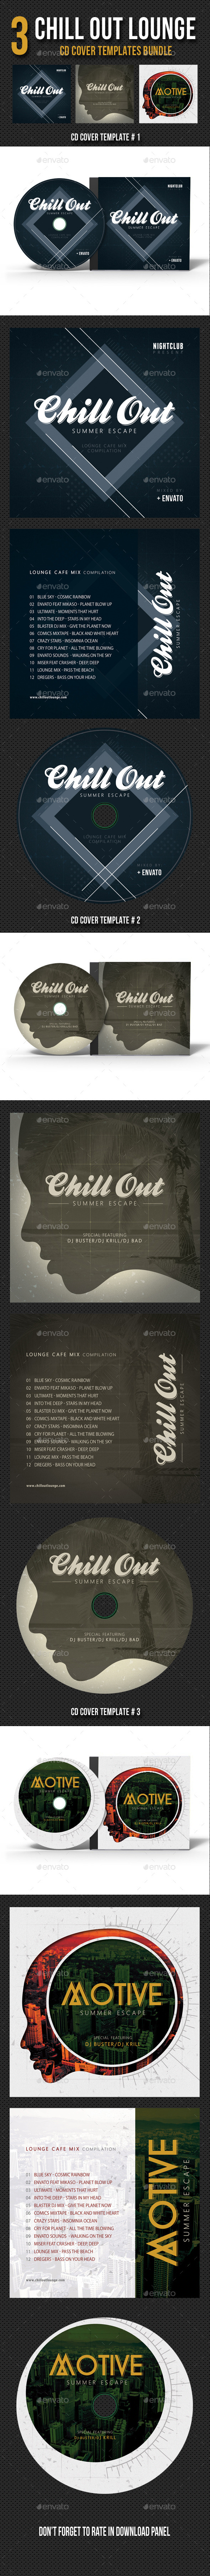 3 in 1 Chill Out Lounge CD Cover Bundle - CD & DVD Artwork Print Templates